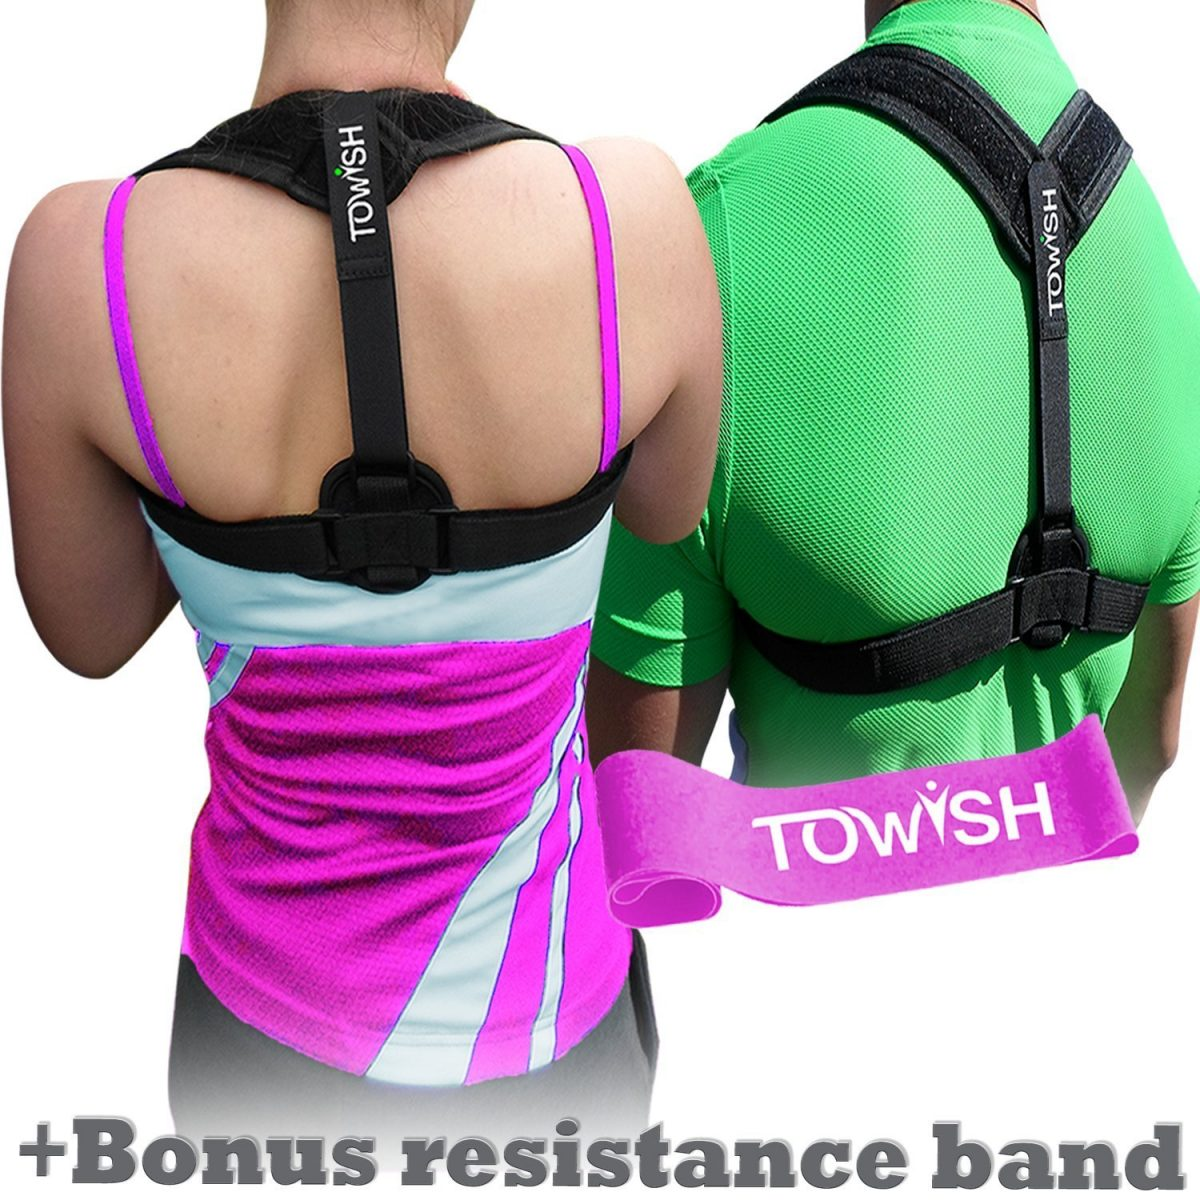 TOWISH Posture Corrector – Your Adjustable Back Support